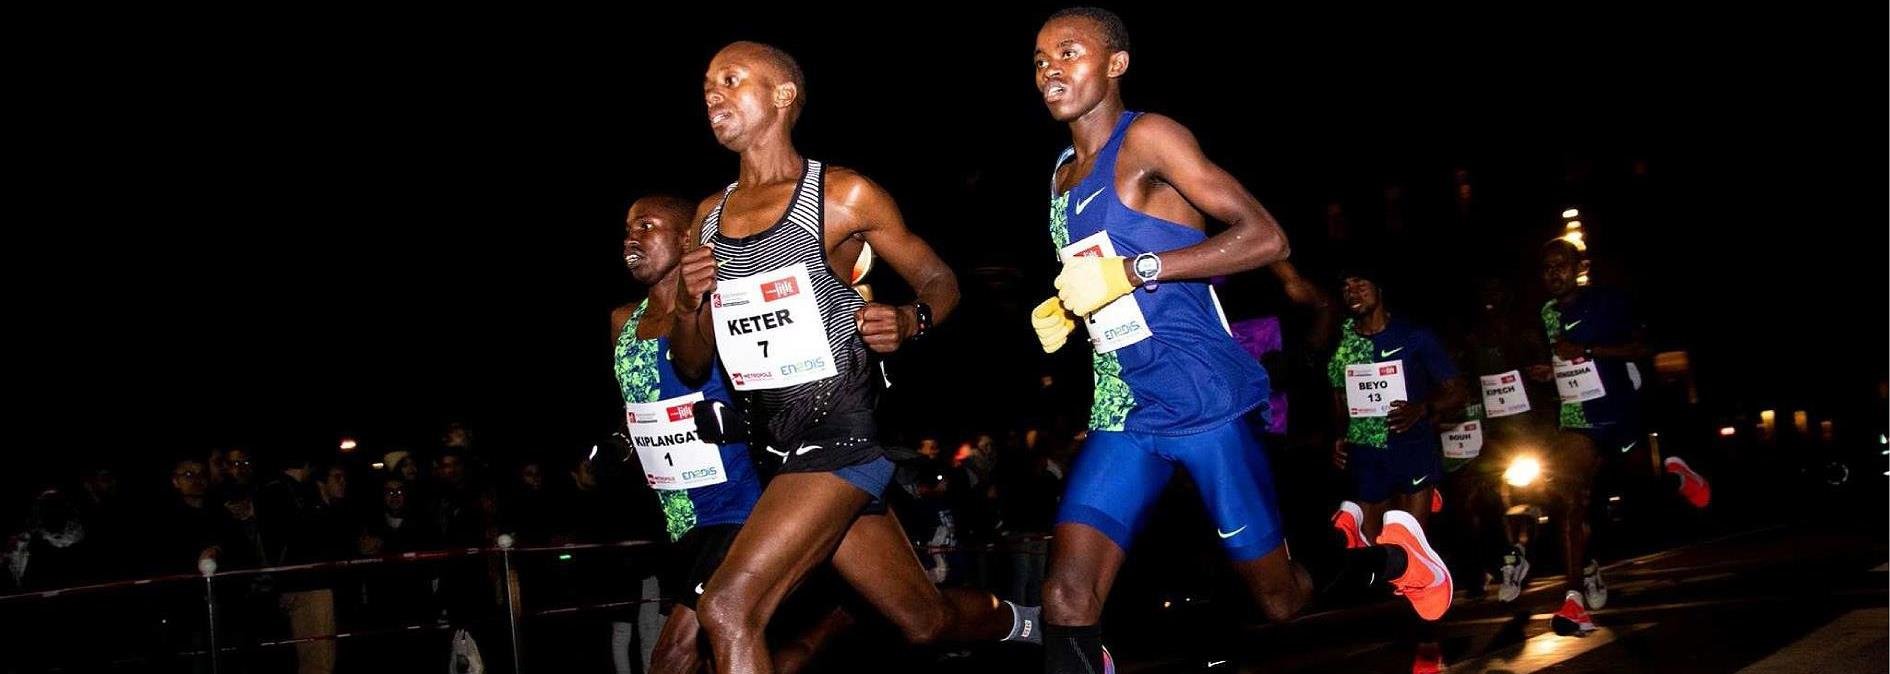 Ratified: Keter's world 5km record